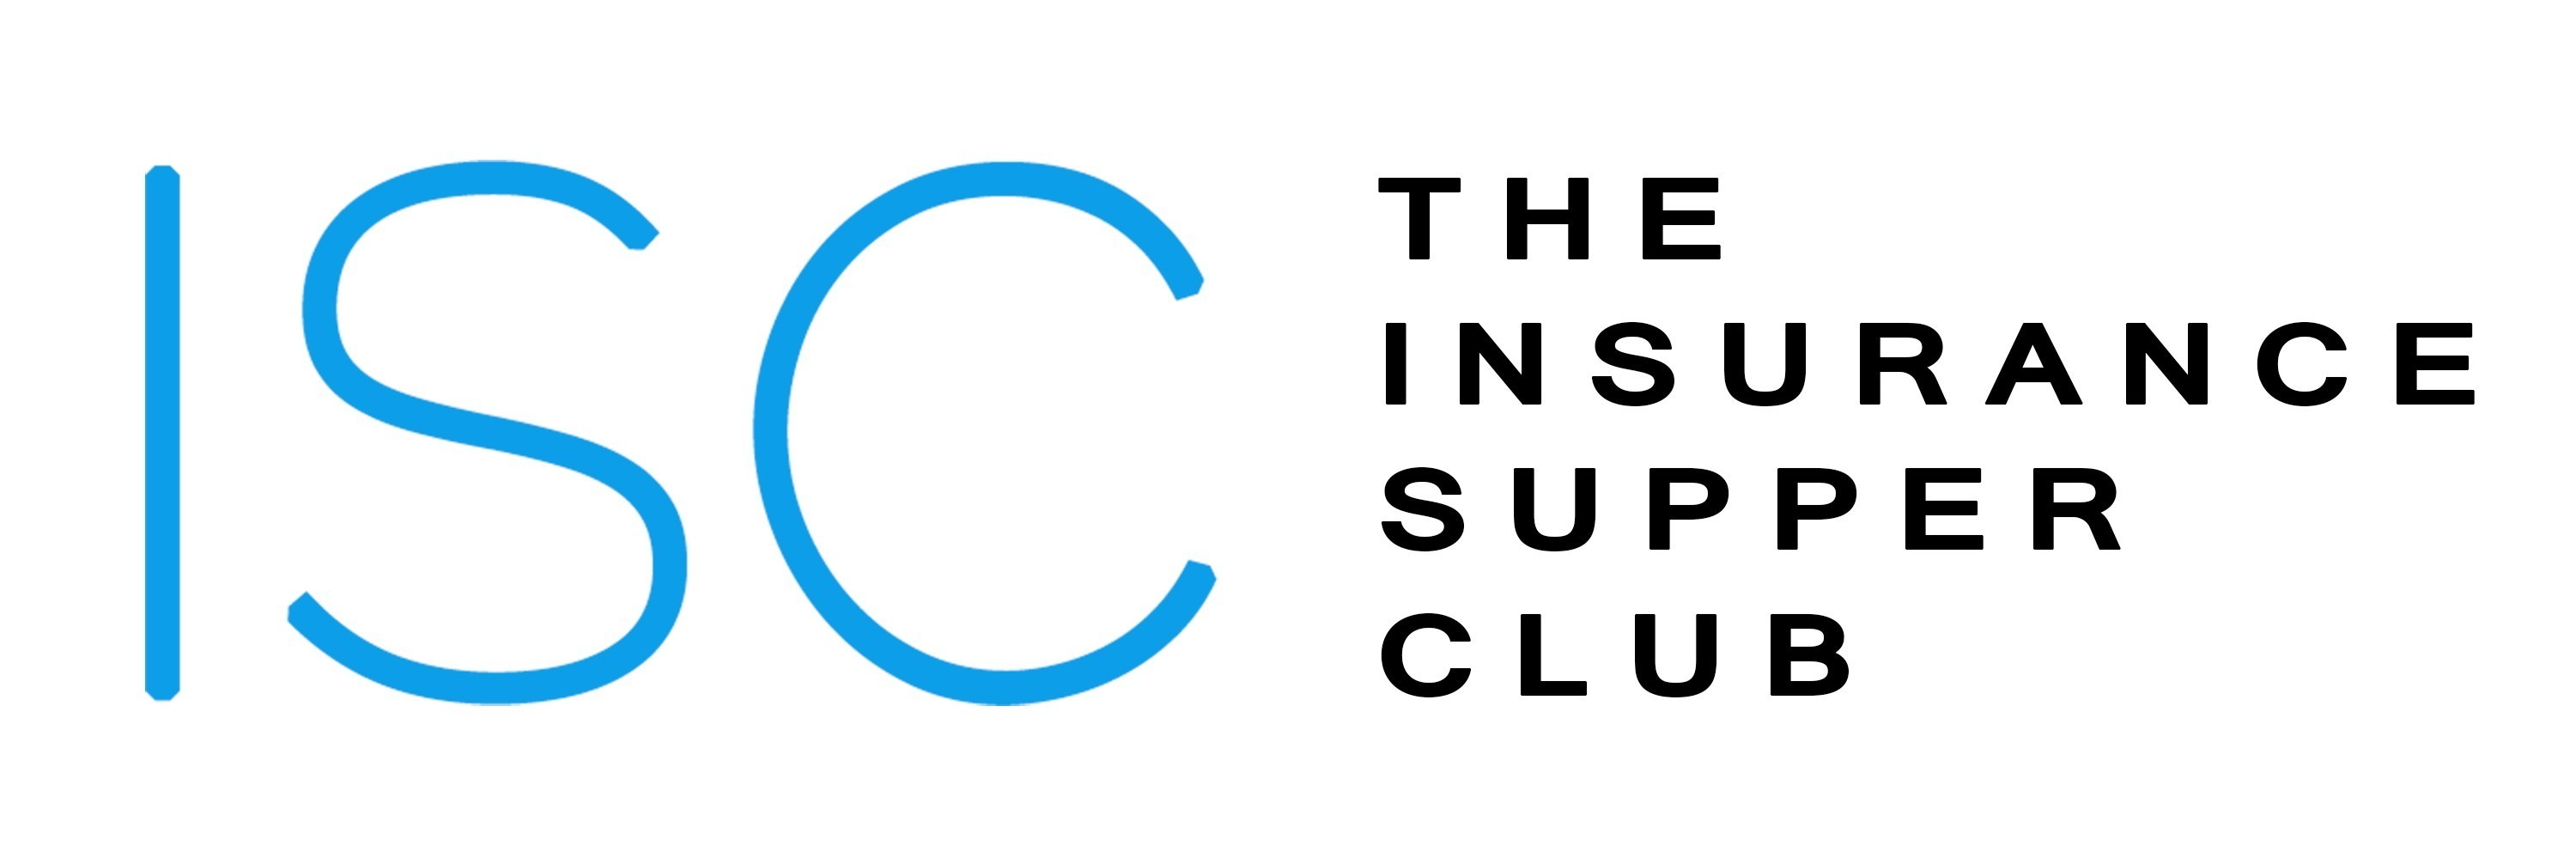 The Insurance Supper Club